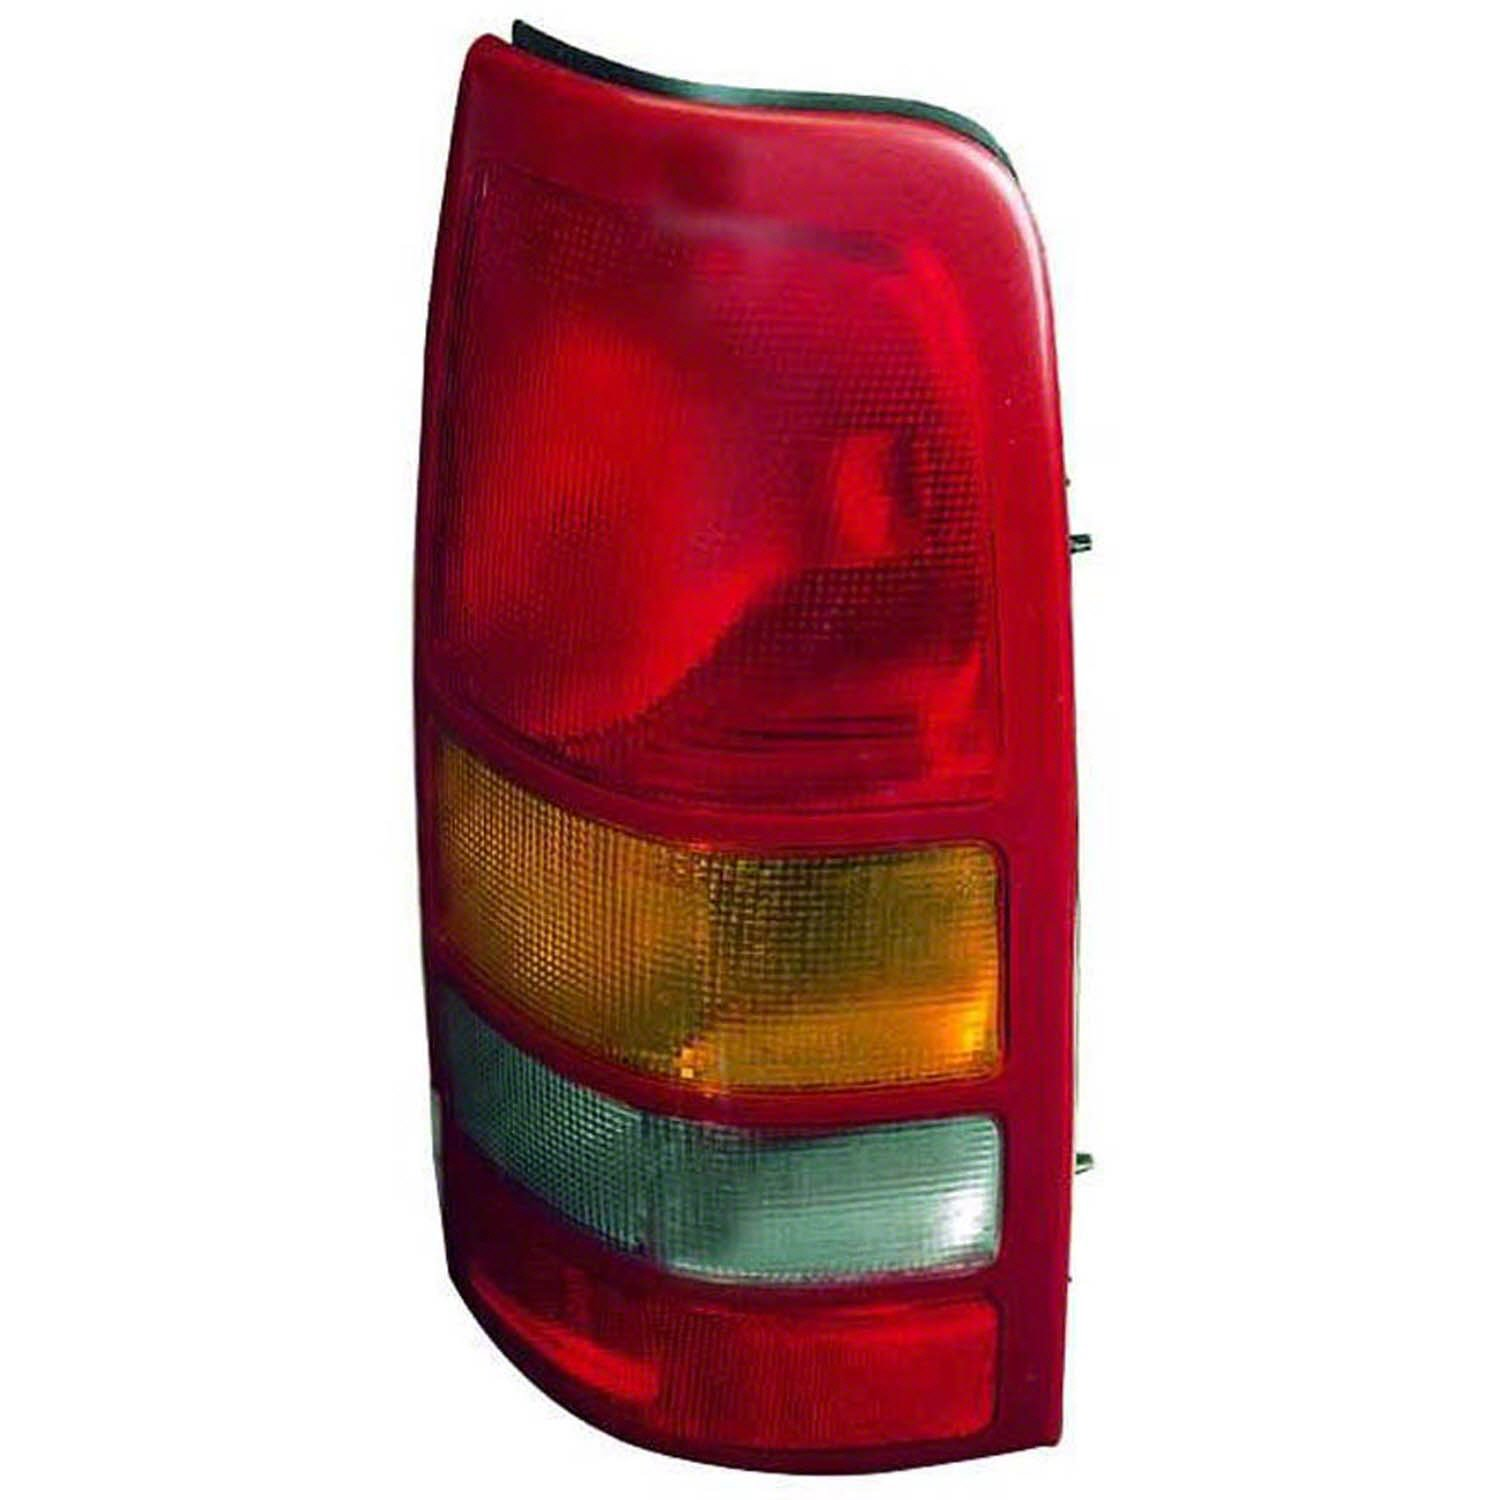 OE Replacement Tail Light CHEVROLET PICKUP CHEVY SILVERADO 1999-2002 Multiple Manufacturers GM2801186C Partslink GM2801186